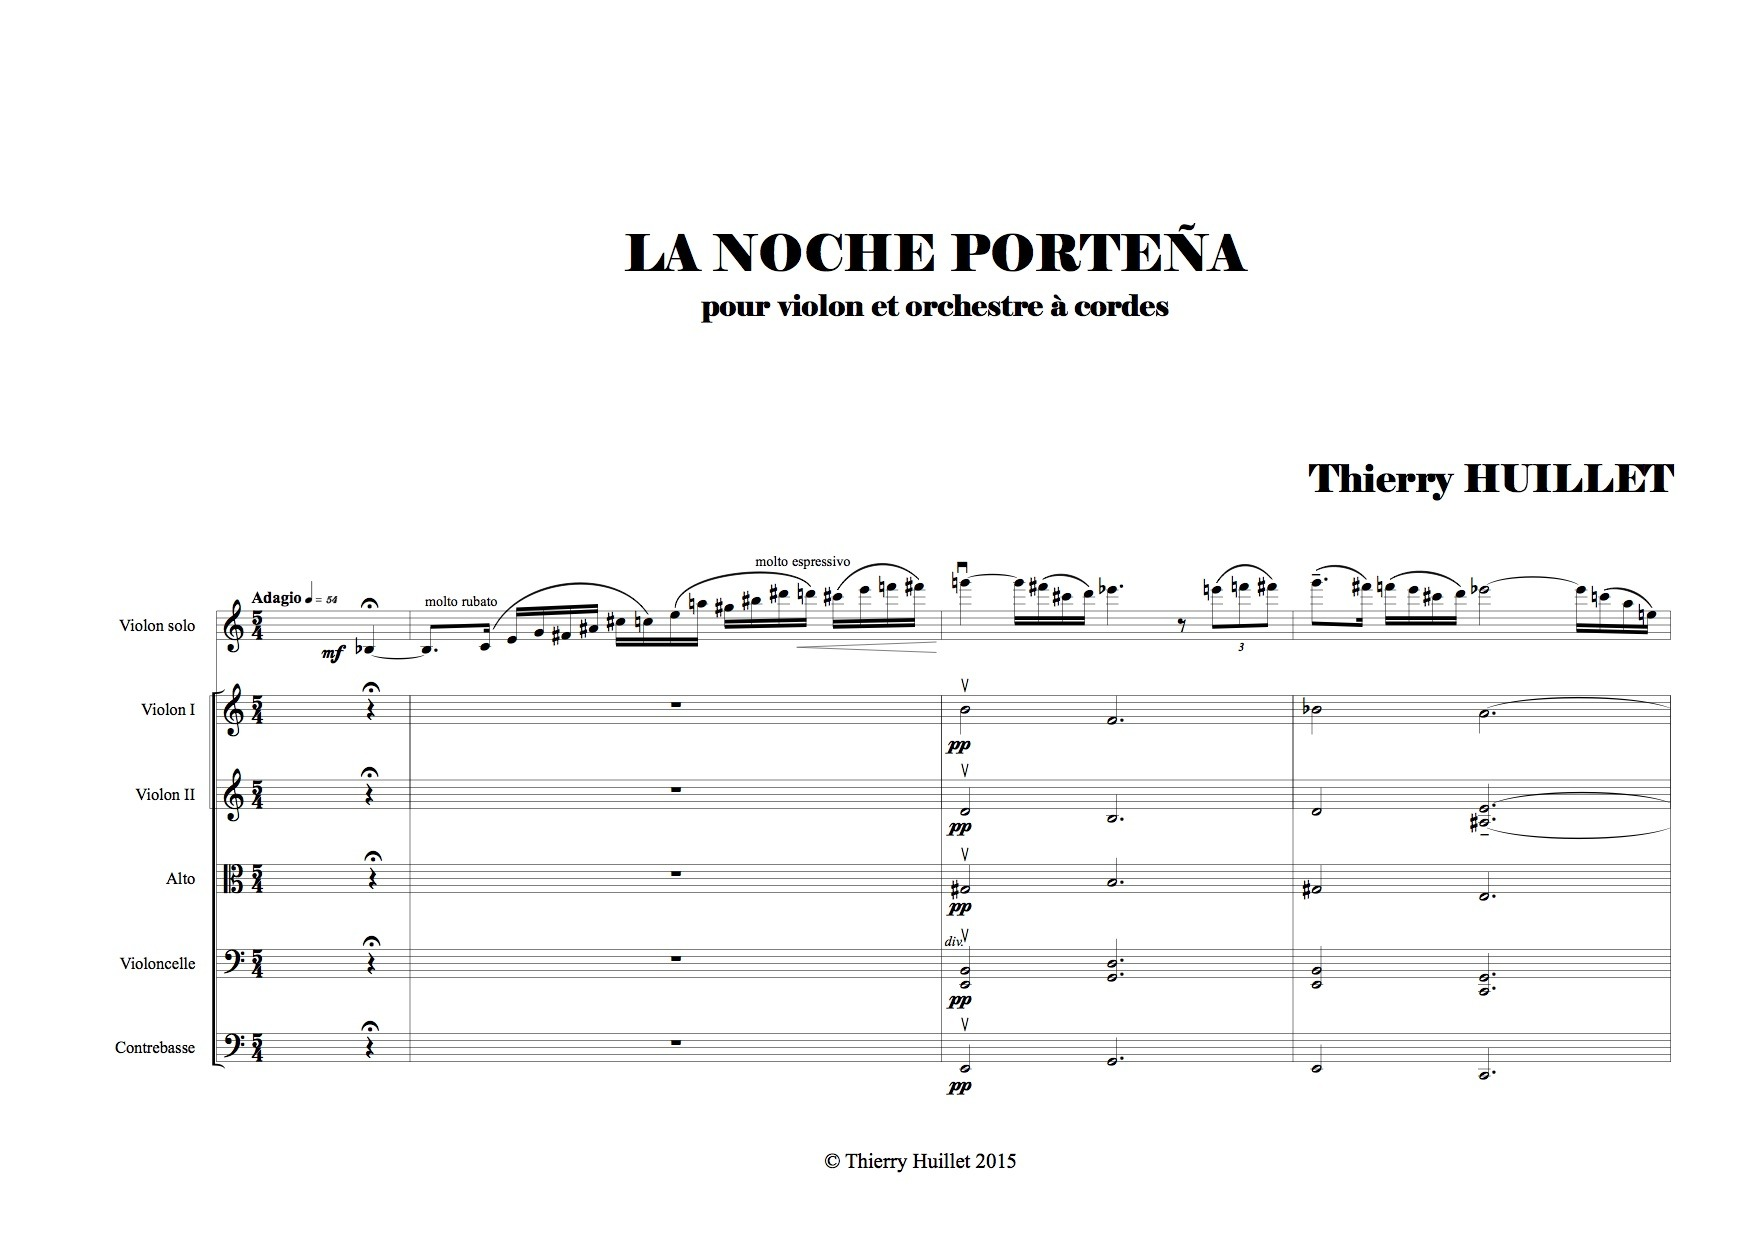 Thierryhuillet Lanocheportena Scorepartsreduction2